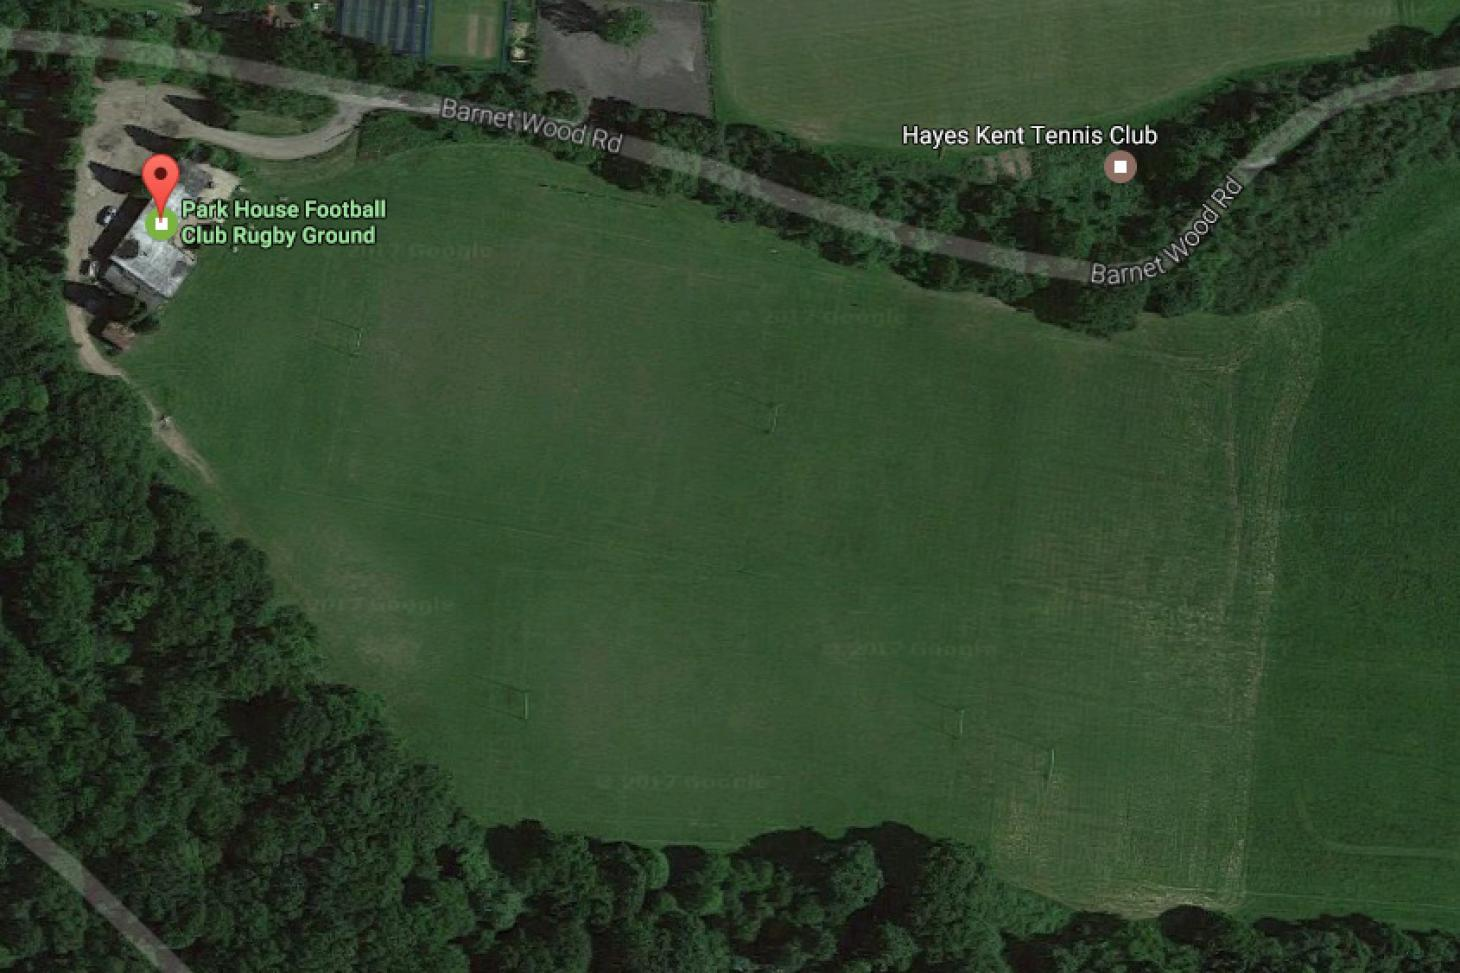 Park House Rugby Football Club Union | Grass rugby pitch